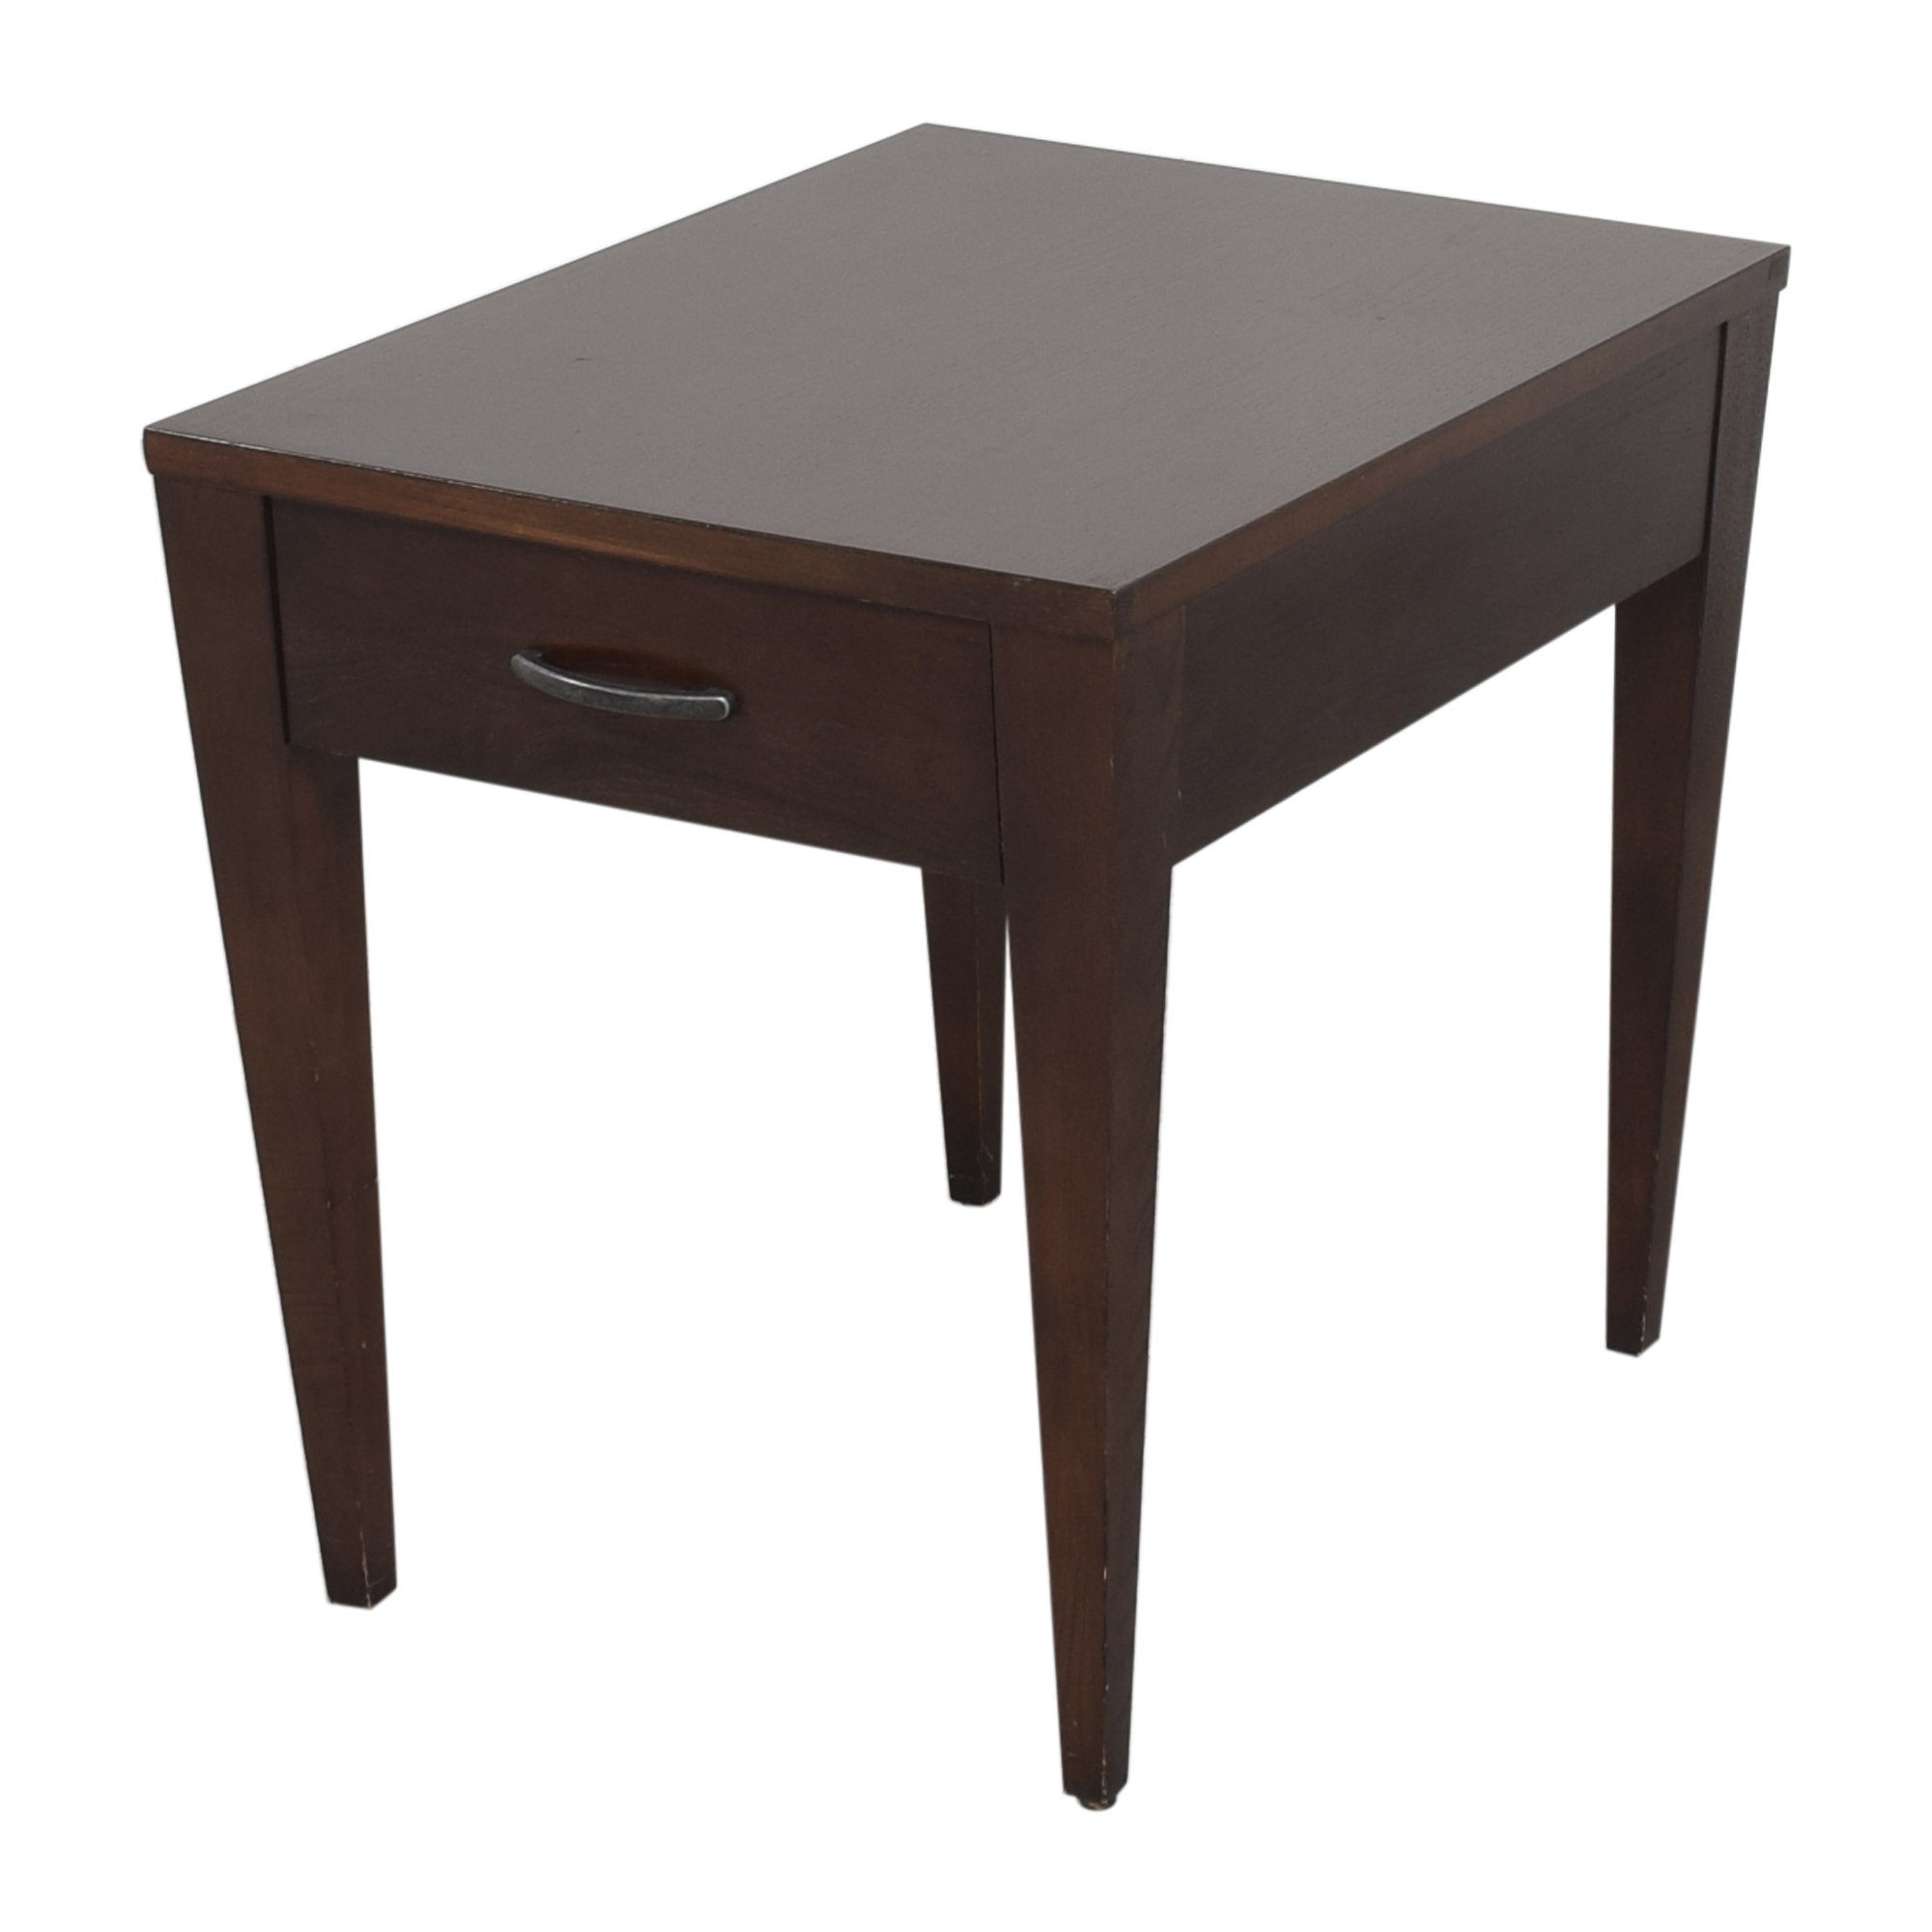 Ethan Allen Horizons End Table / Tables